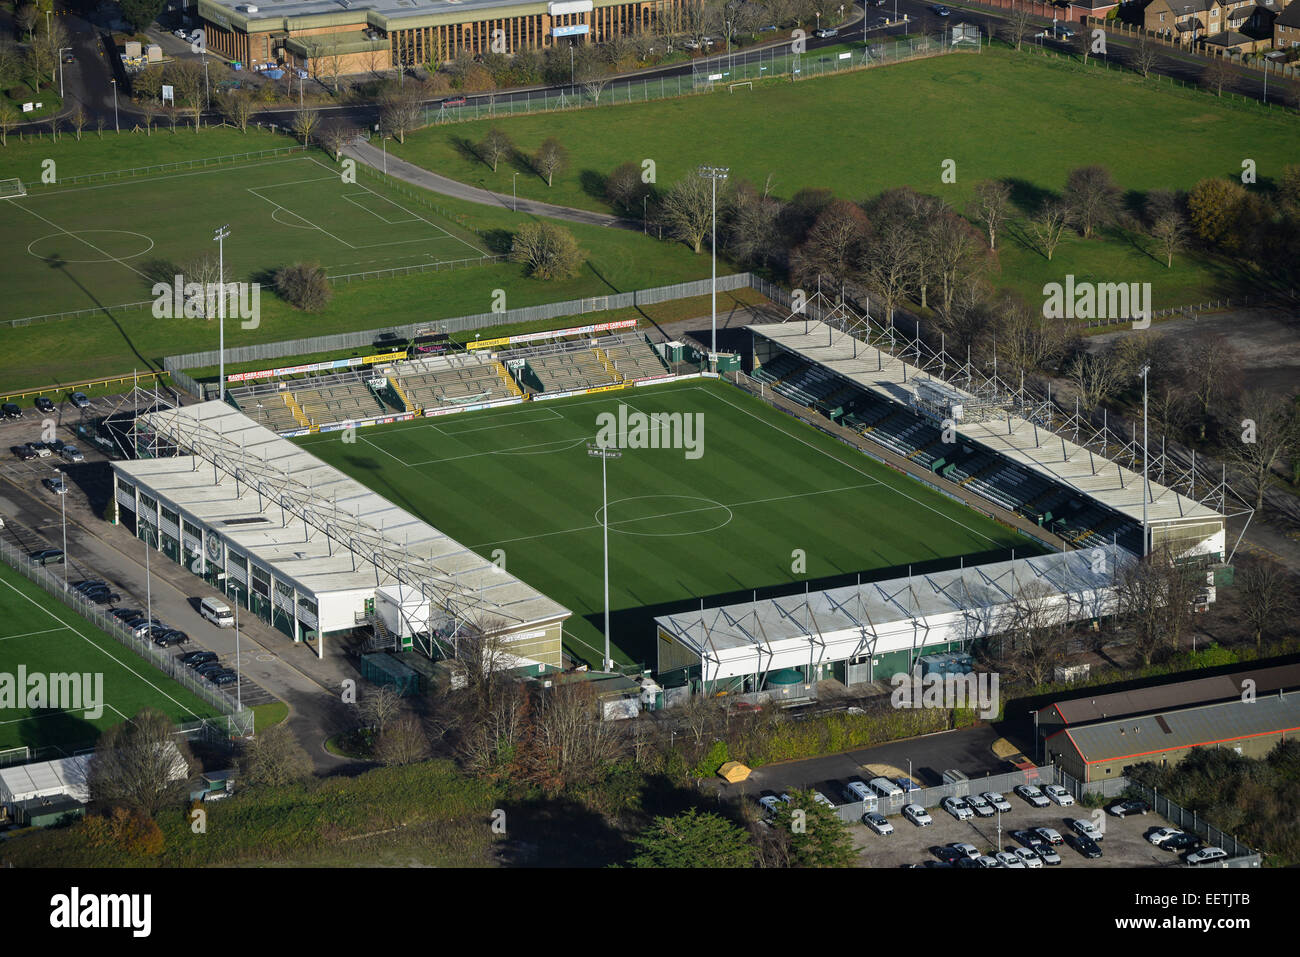 An Aerial View Of Huish Park The Home Yeovil Town FC Also Known As Glovers